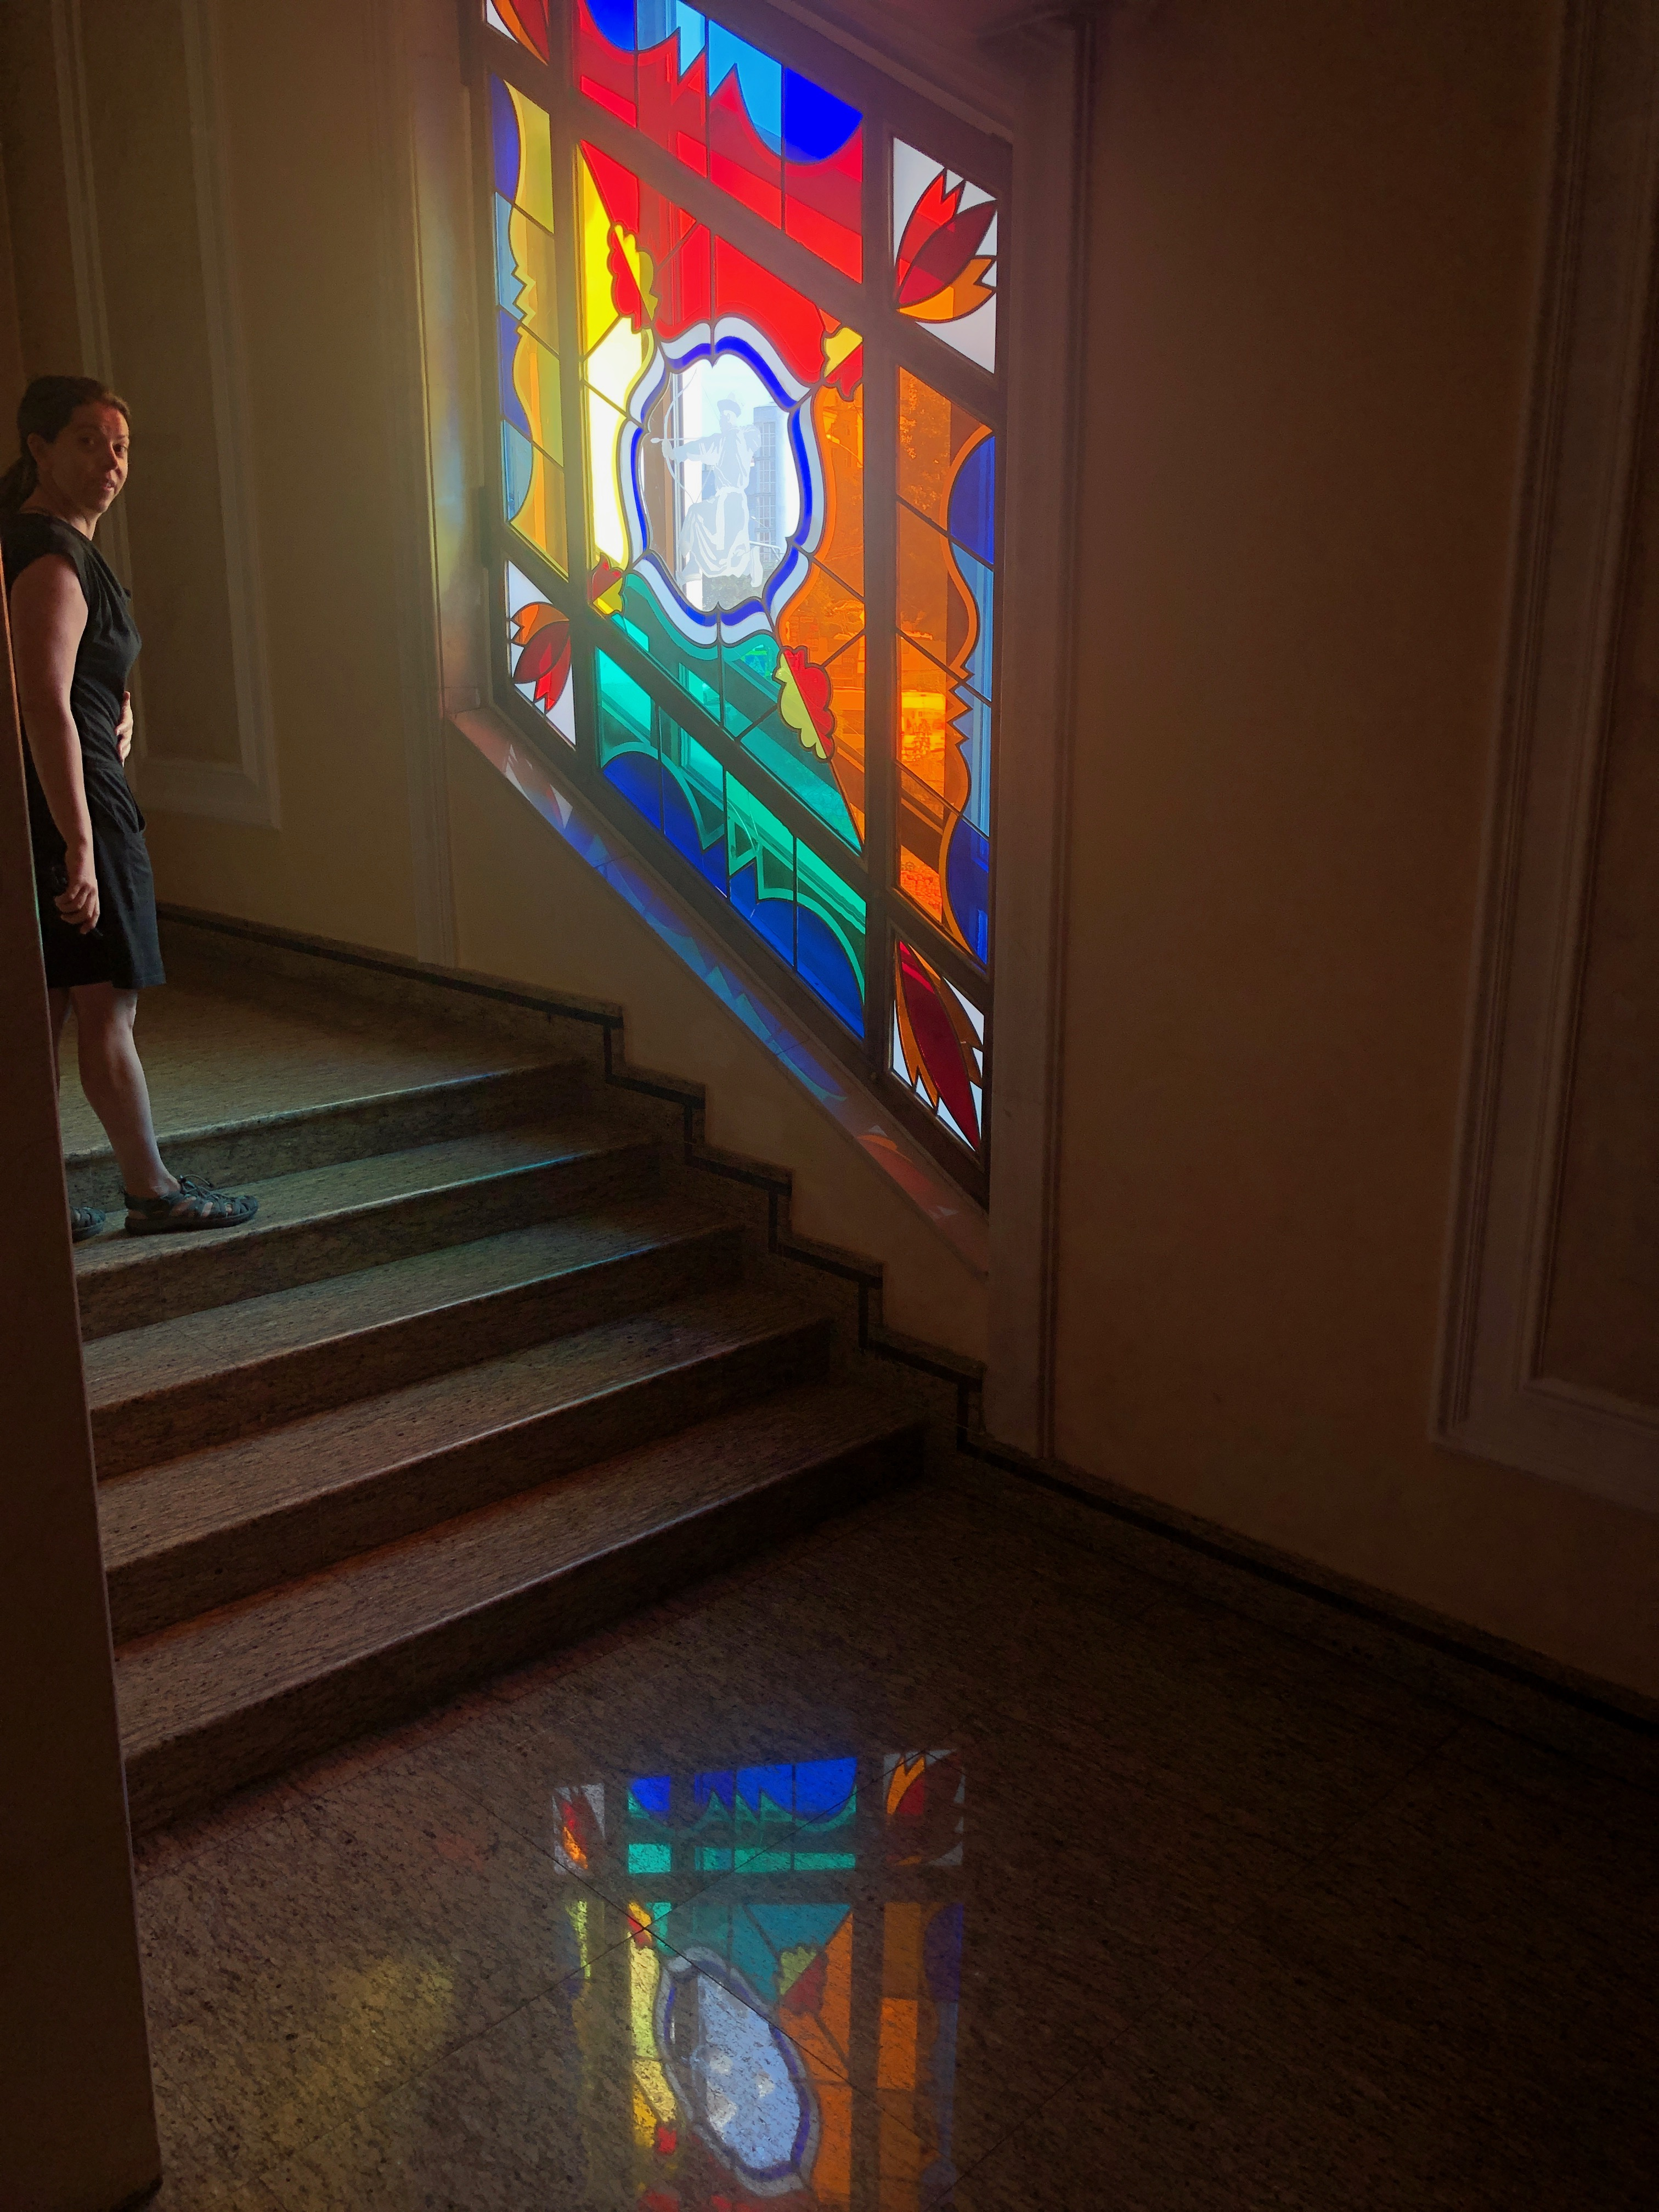 Stained-glass window and reflection at ballet theater in Ulan-Ude, Russia